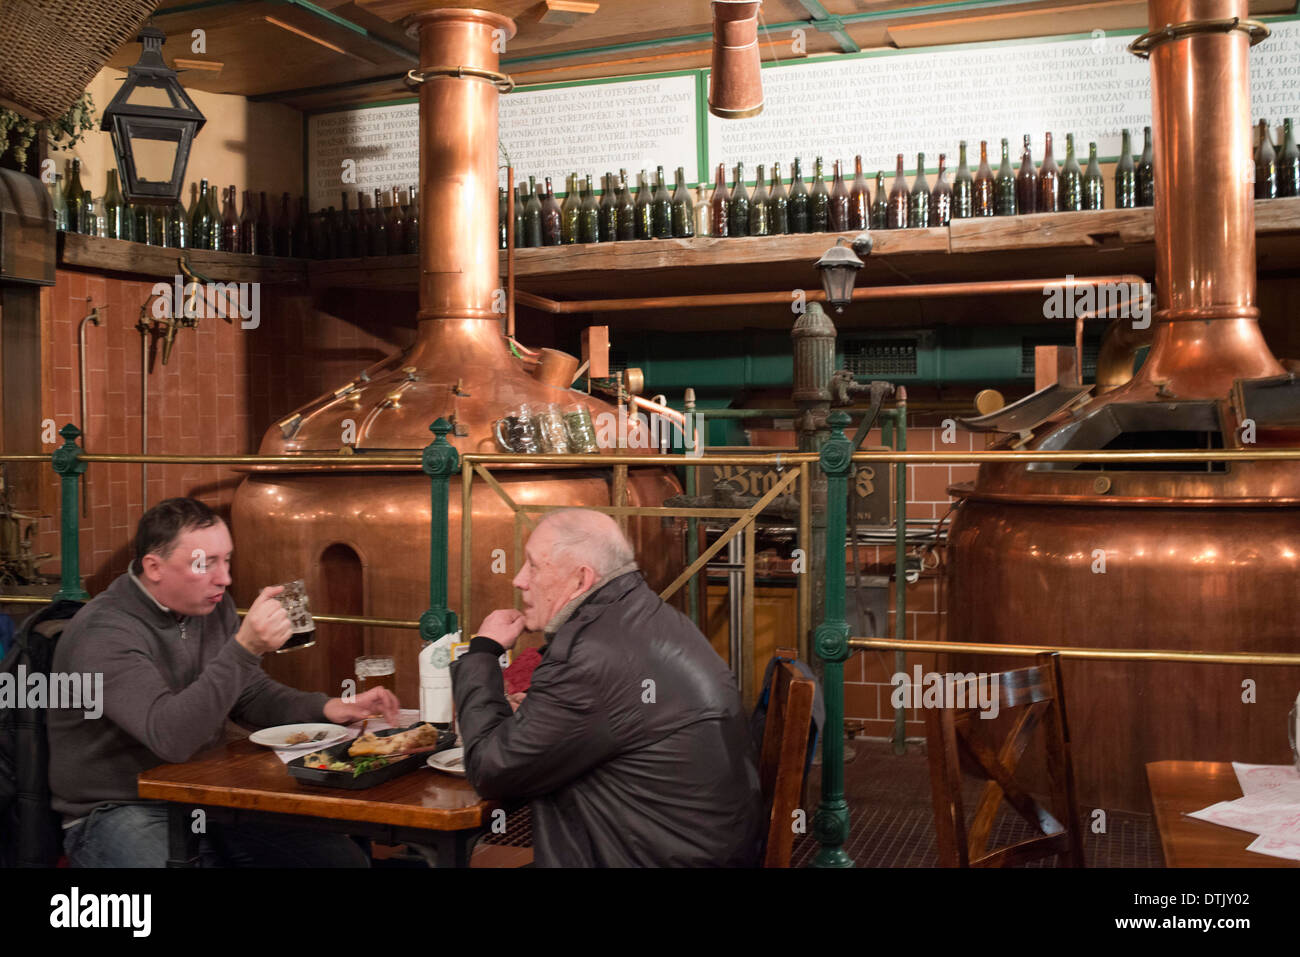 Resturant and brewery. Novoměstský Brewery brewery, which was in 1993 the first microbrewery opened in Prague in the twentieth - Stock Image